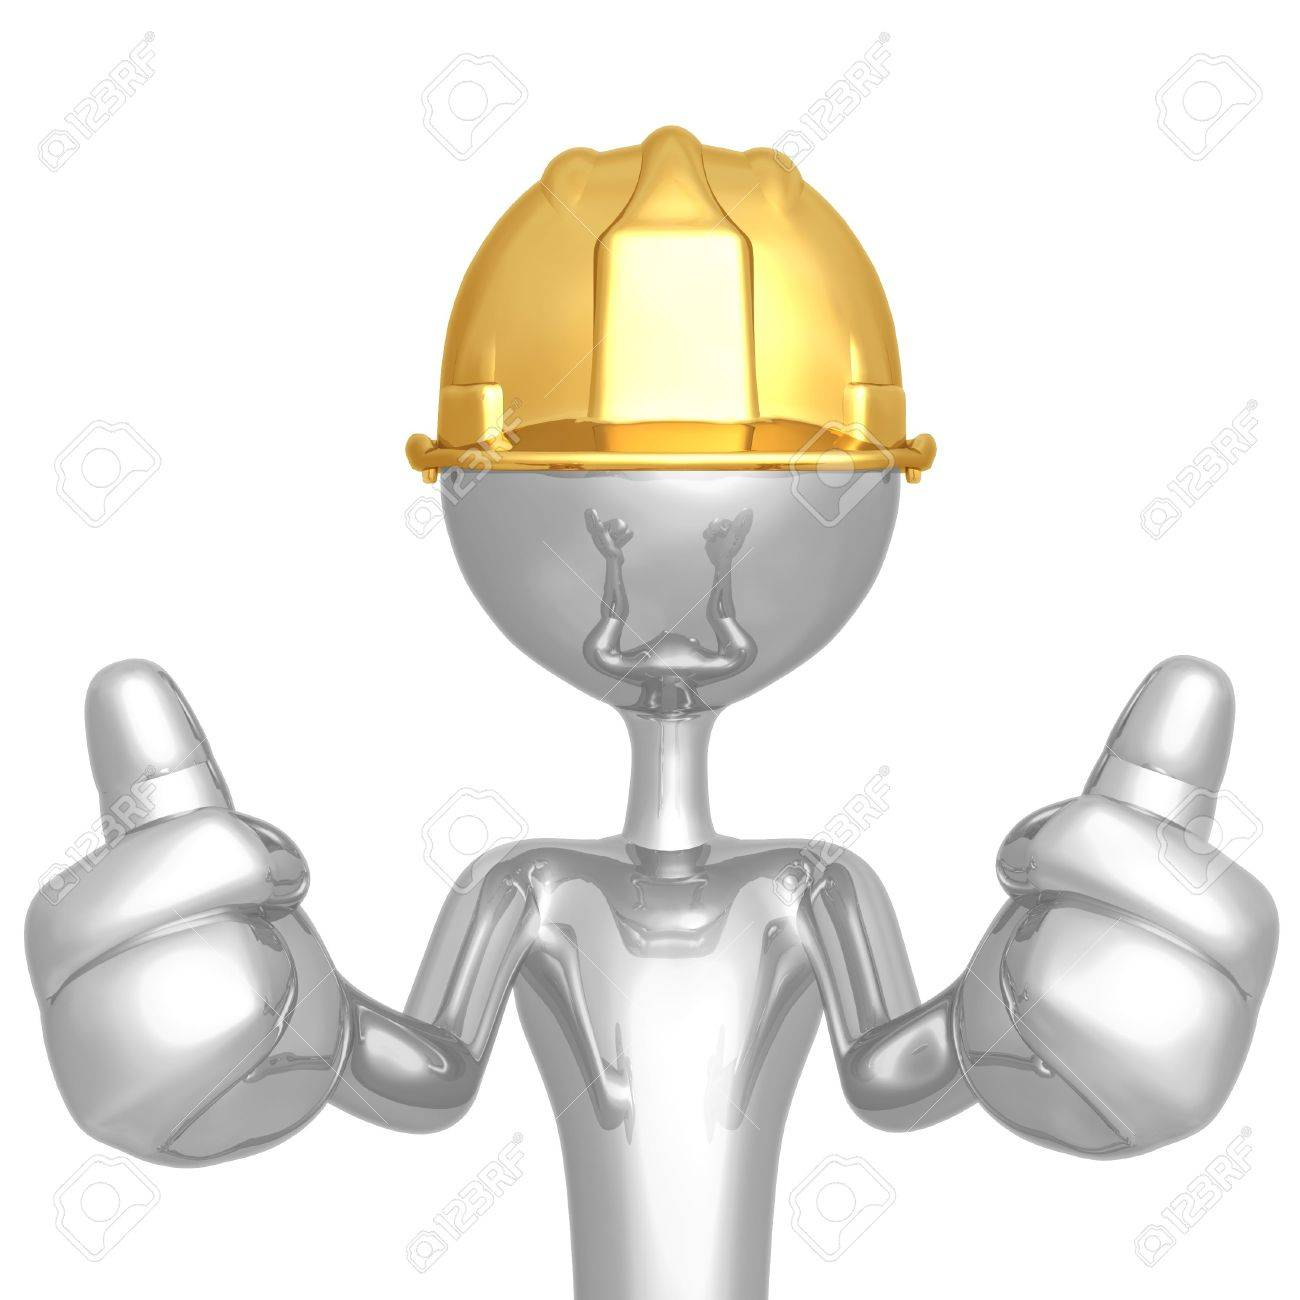 1300x1300 Construction Worker Two Thumbs Up Stock Photo, Picture And Royalty